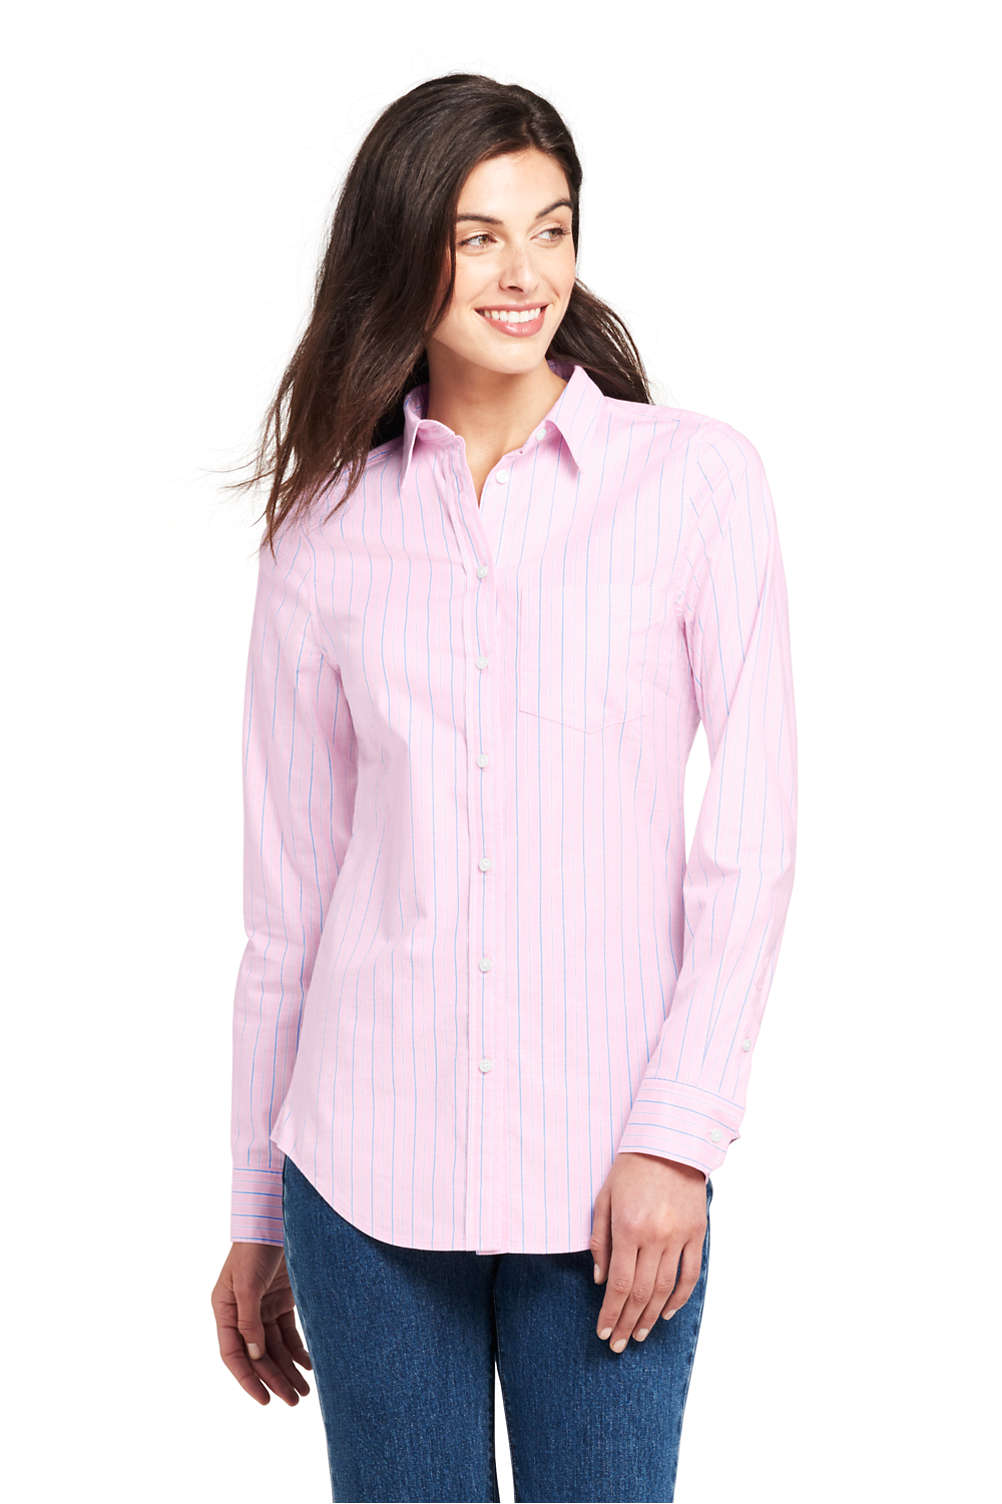 60% discount new lifestyle search for genuine Women's Oxford Shirt